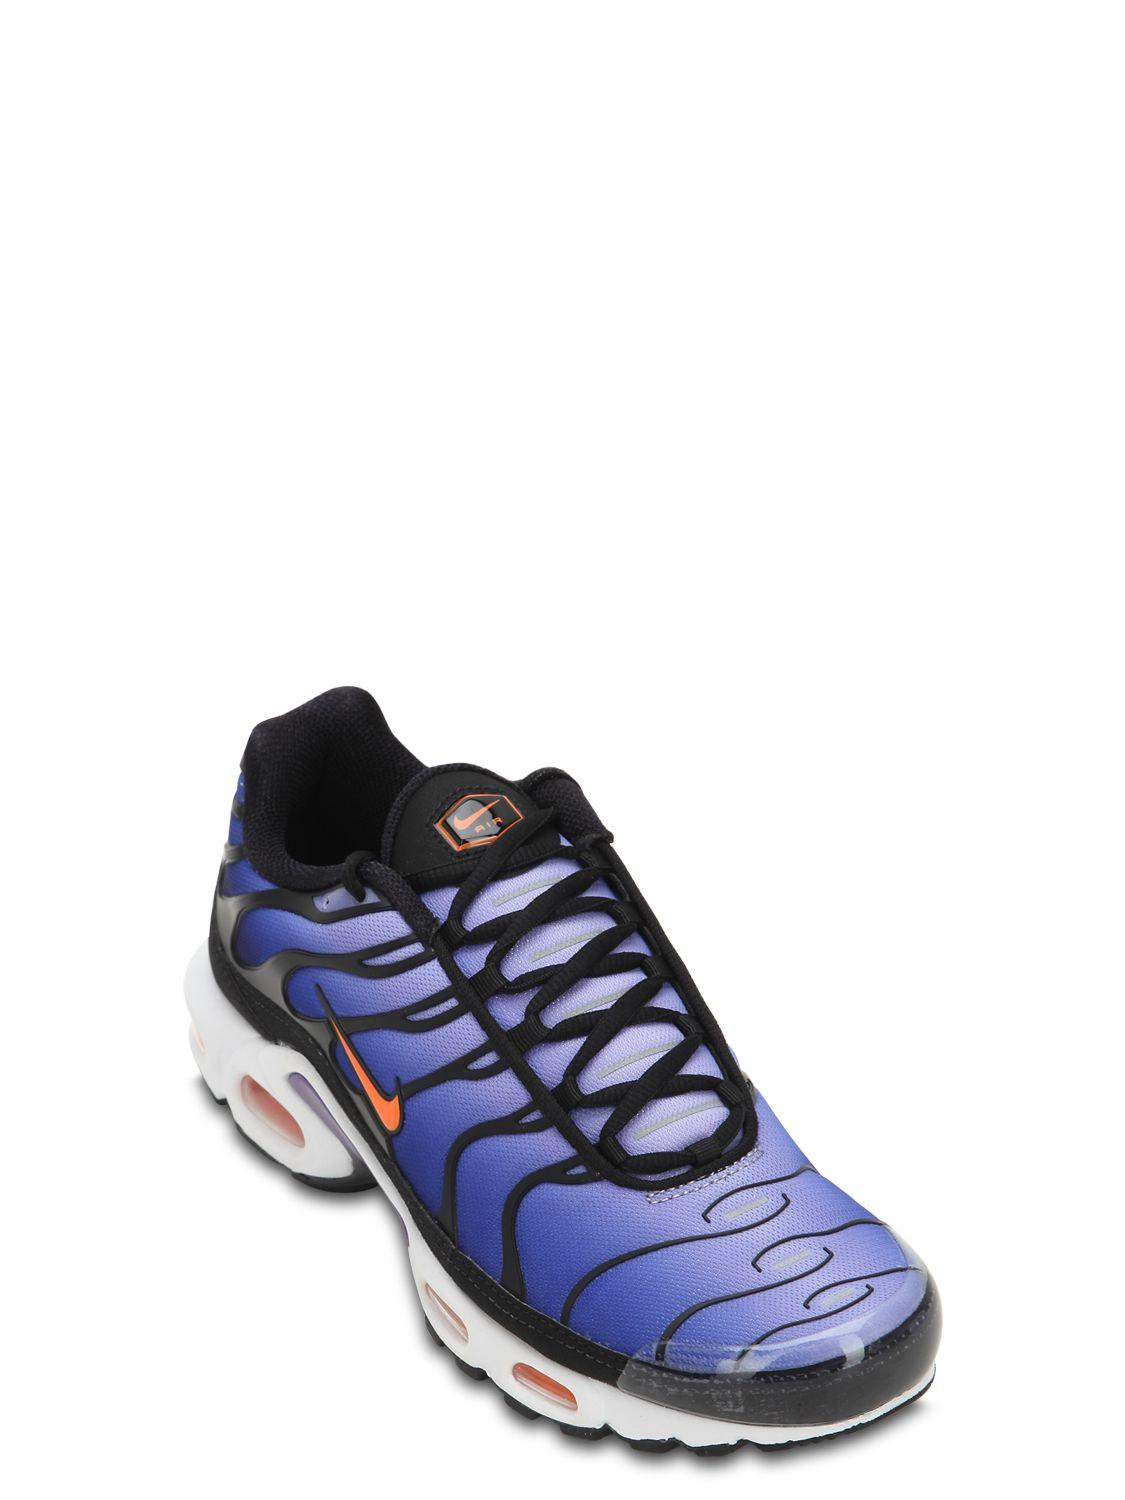 newest 790e5 f7f16 Nike Air Max Plus Og Sneakers in Purple - Lyst